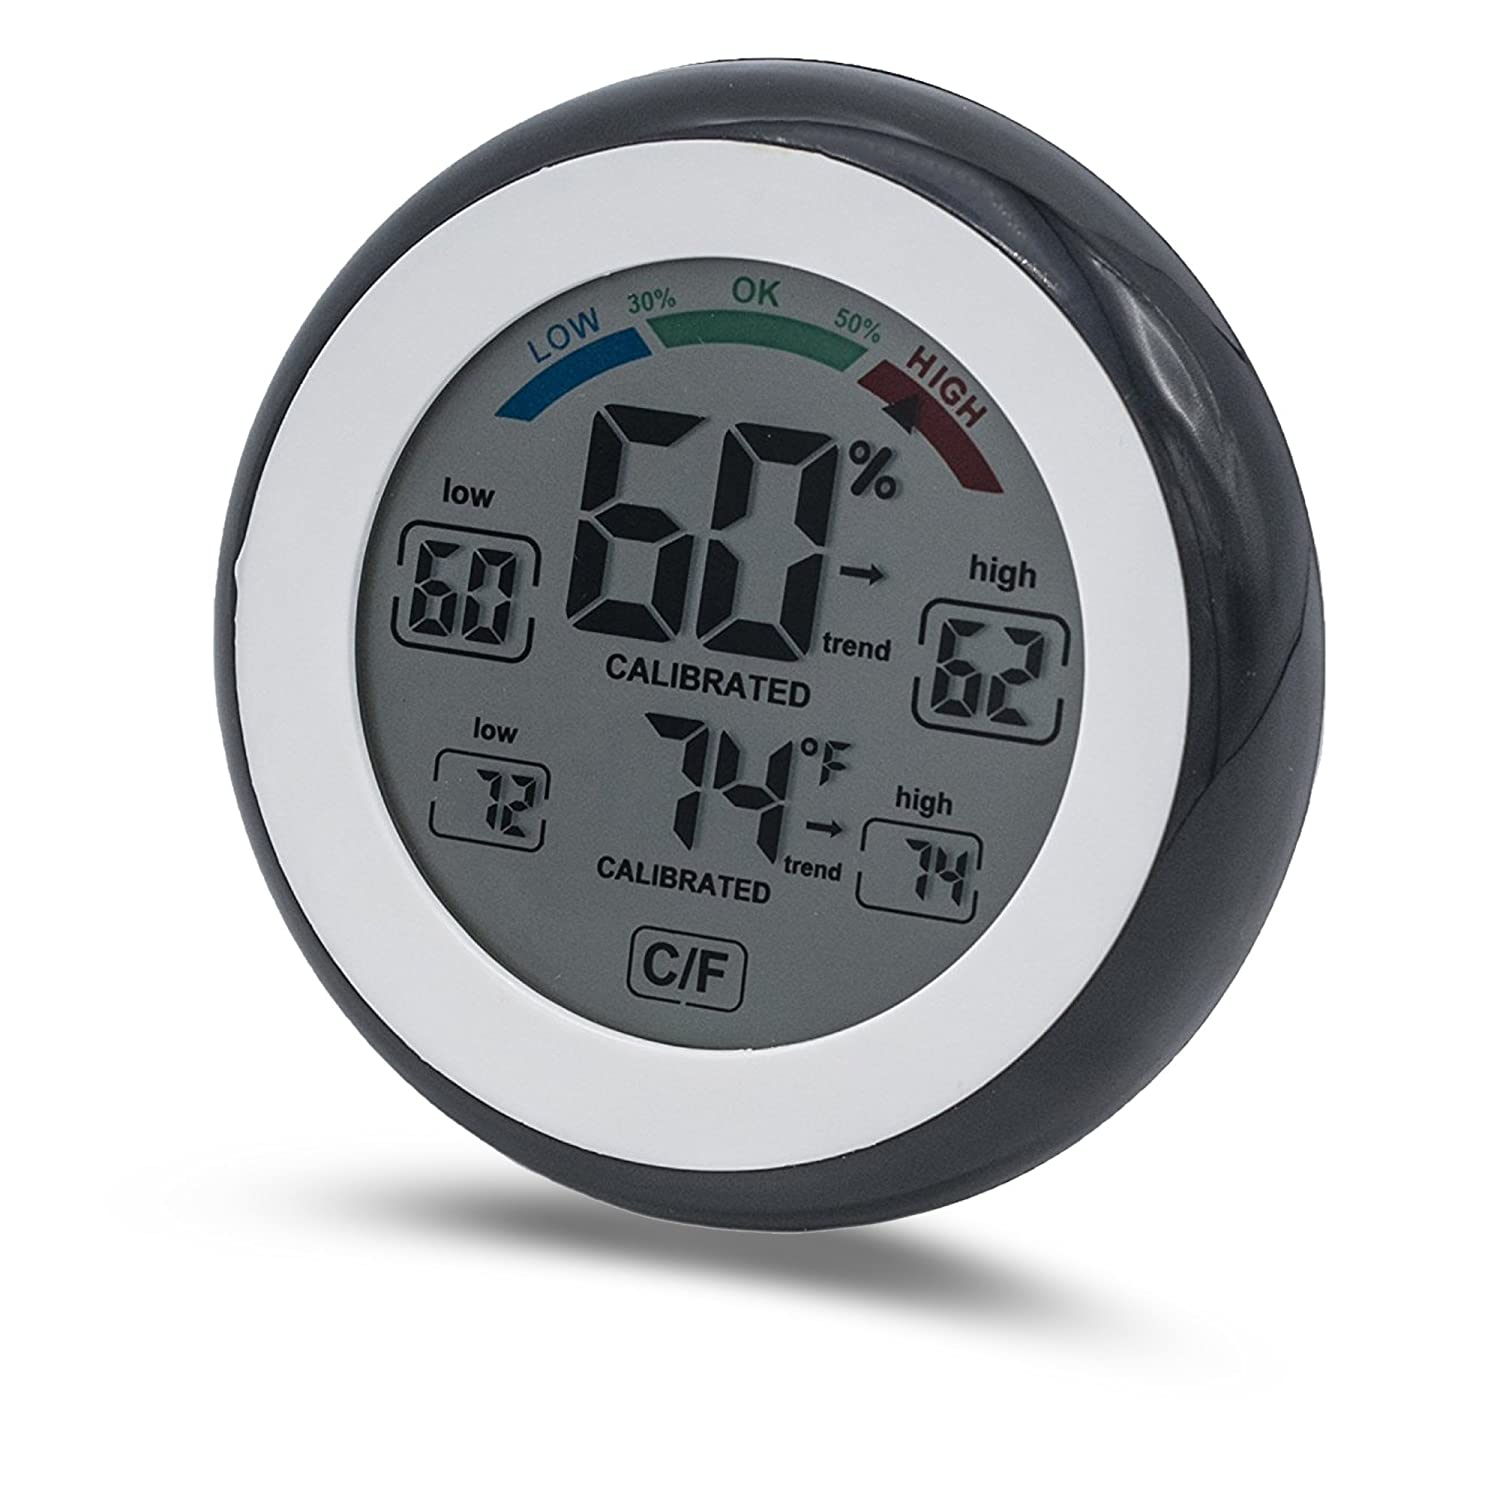 Zone - 365 Hygrometer with Digital Thermometer Humidity and Temperature Monitoring. Active Color LCD Touch Screen Switching Between C & F Ubiquitous